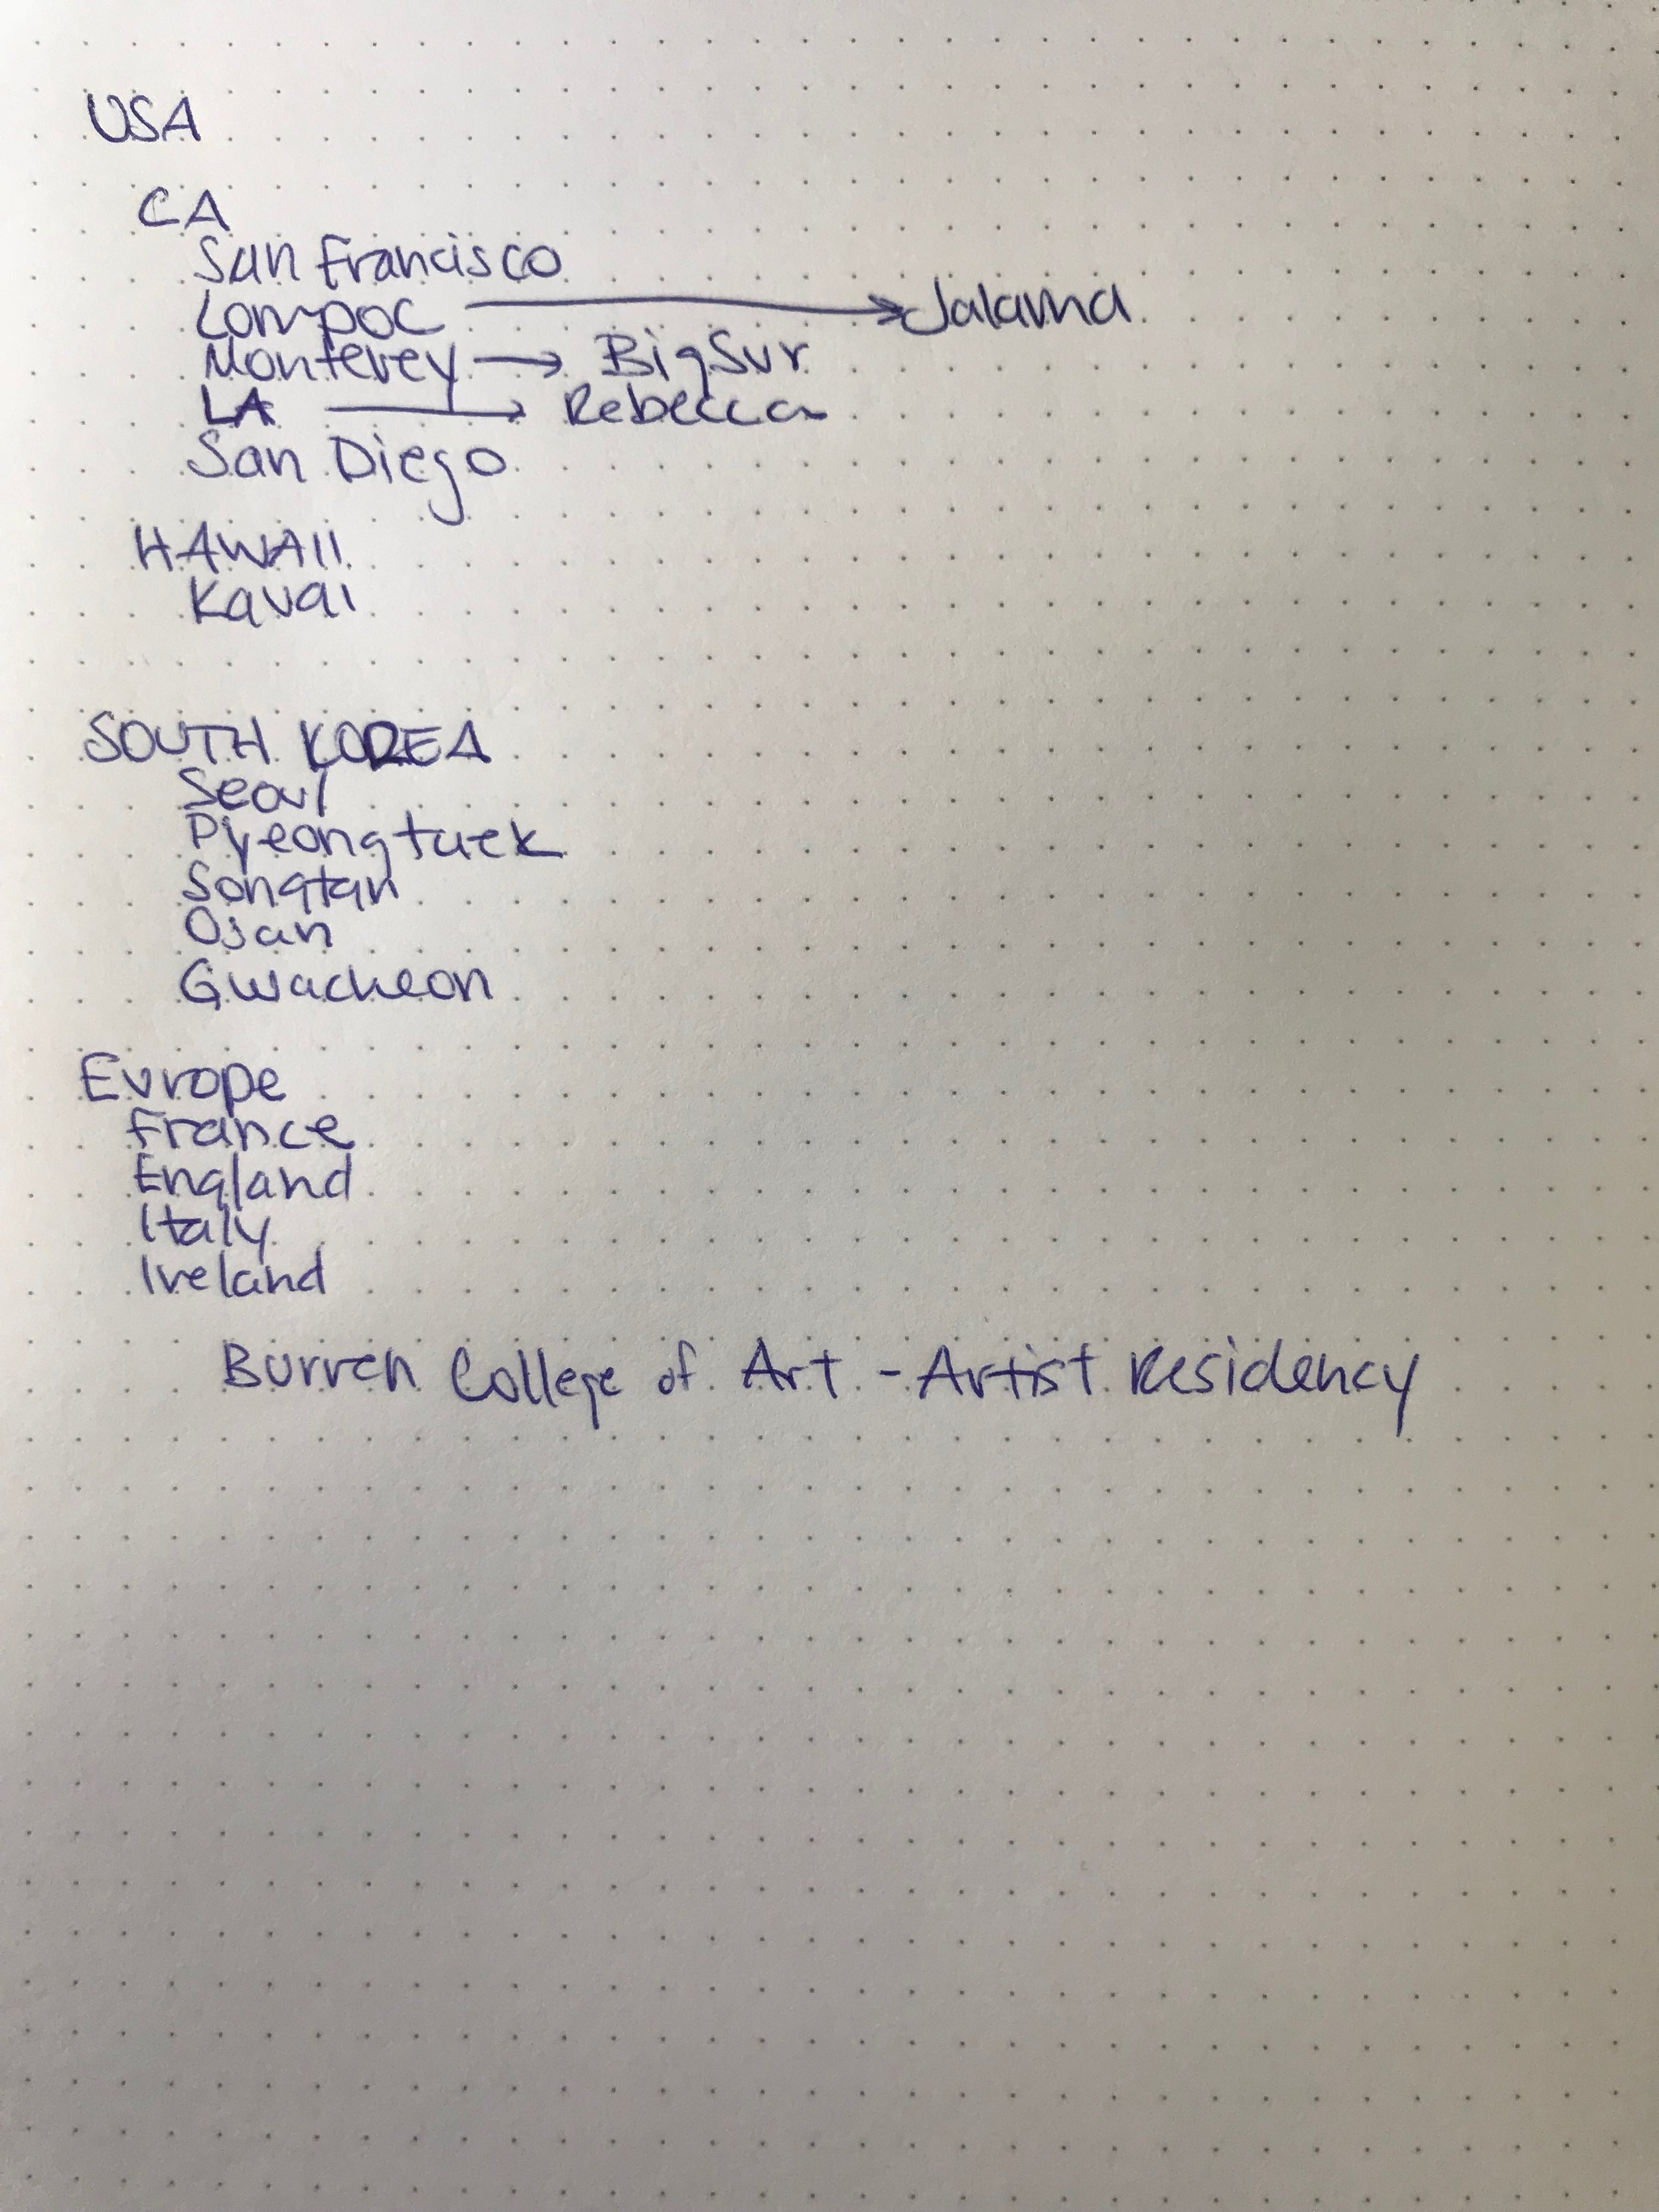 Ze plan... - Rewritten for this purpose. (Original document lost somewhere between South Korea and Italy)